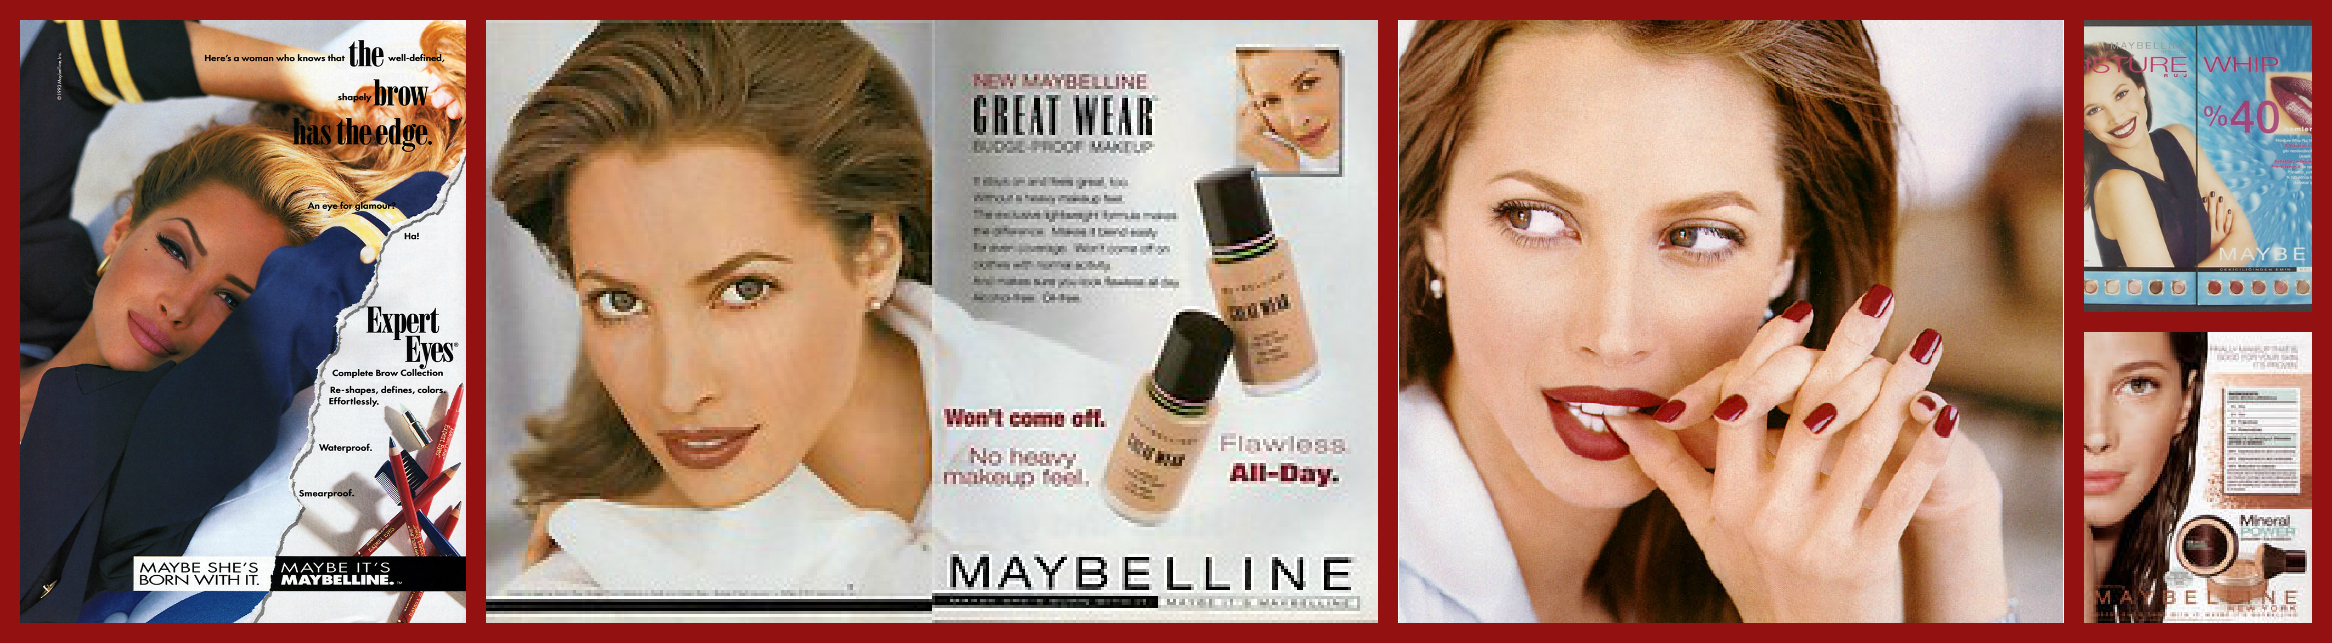 maybelline-christy